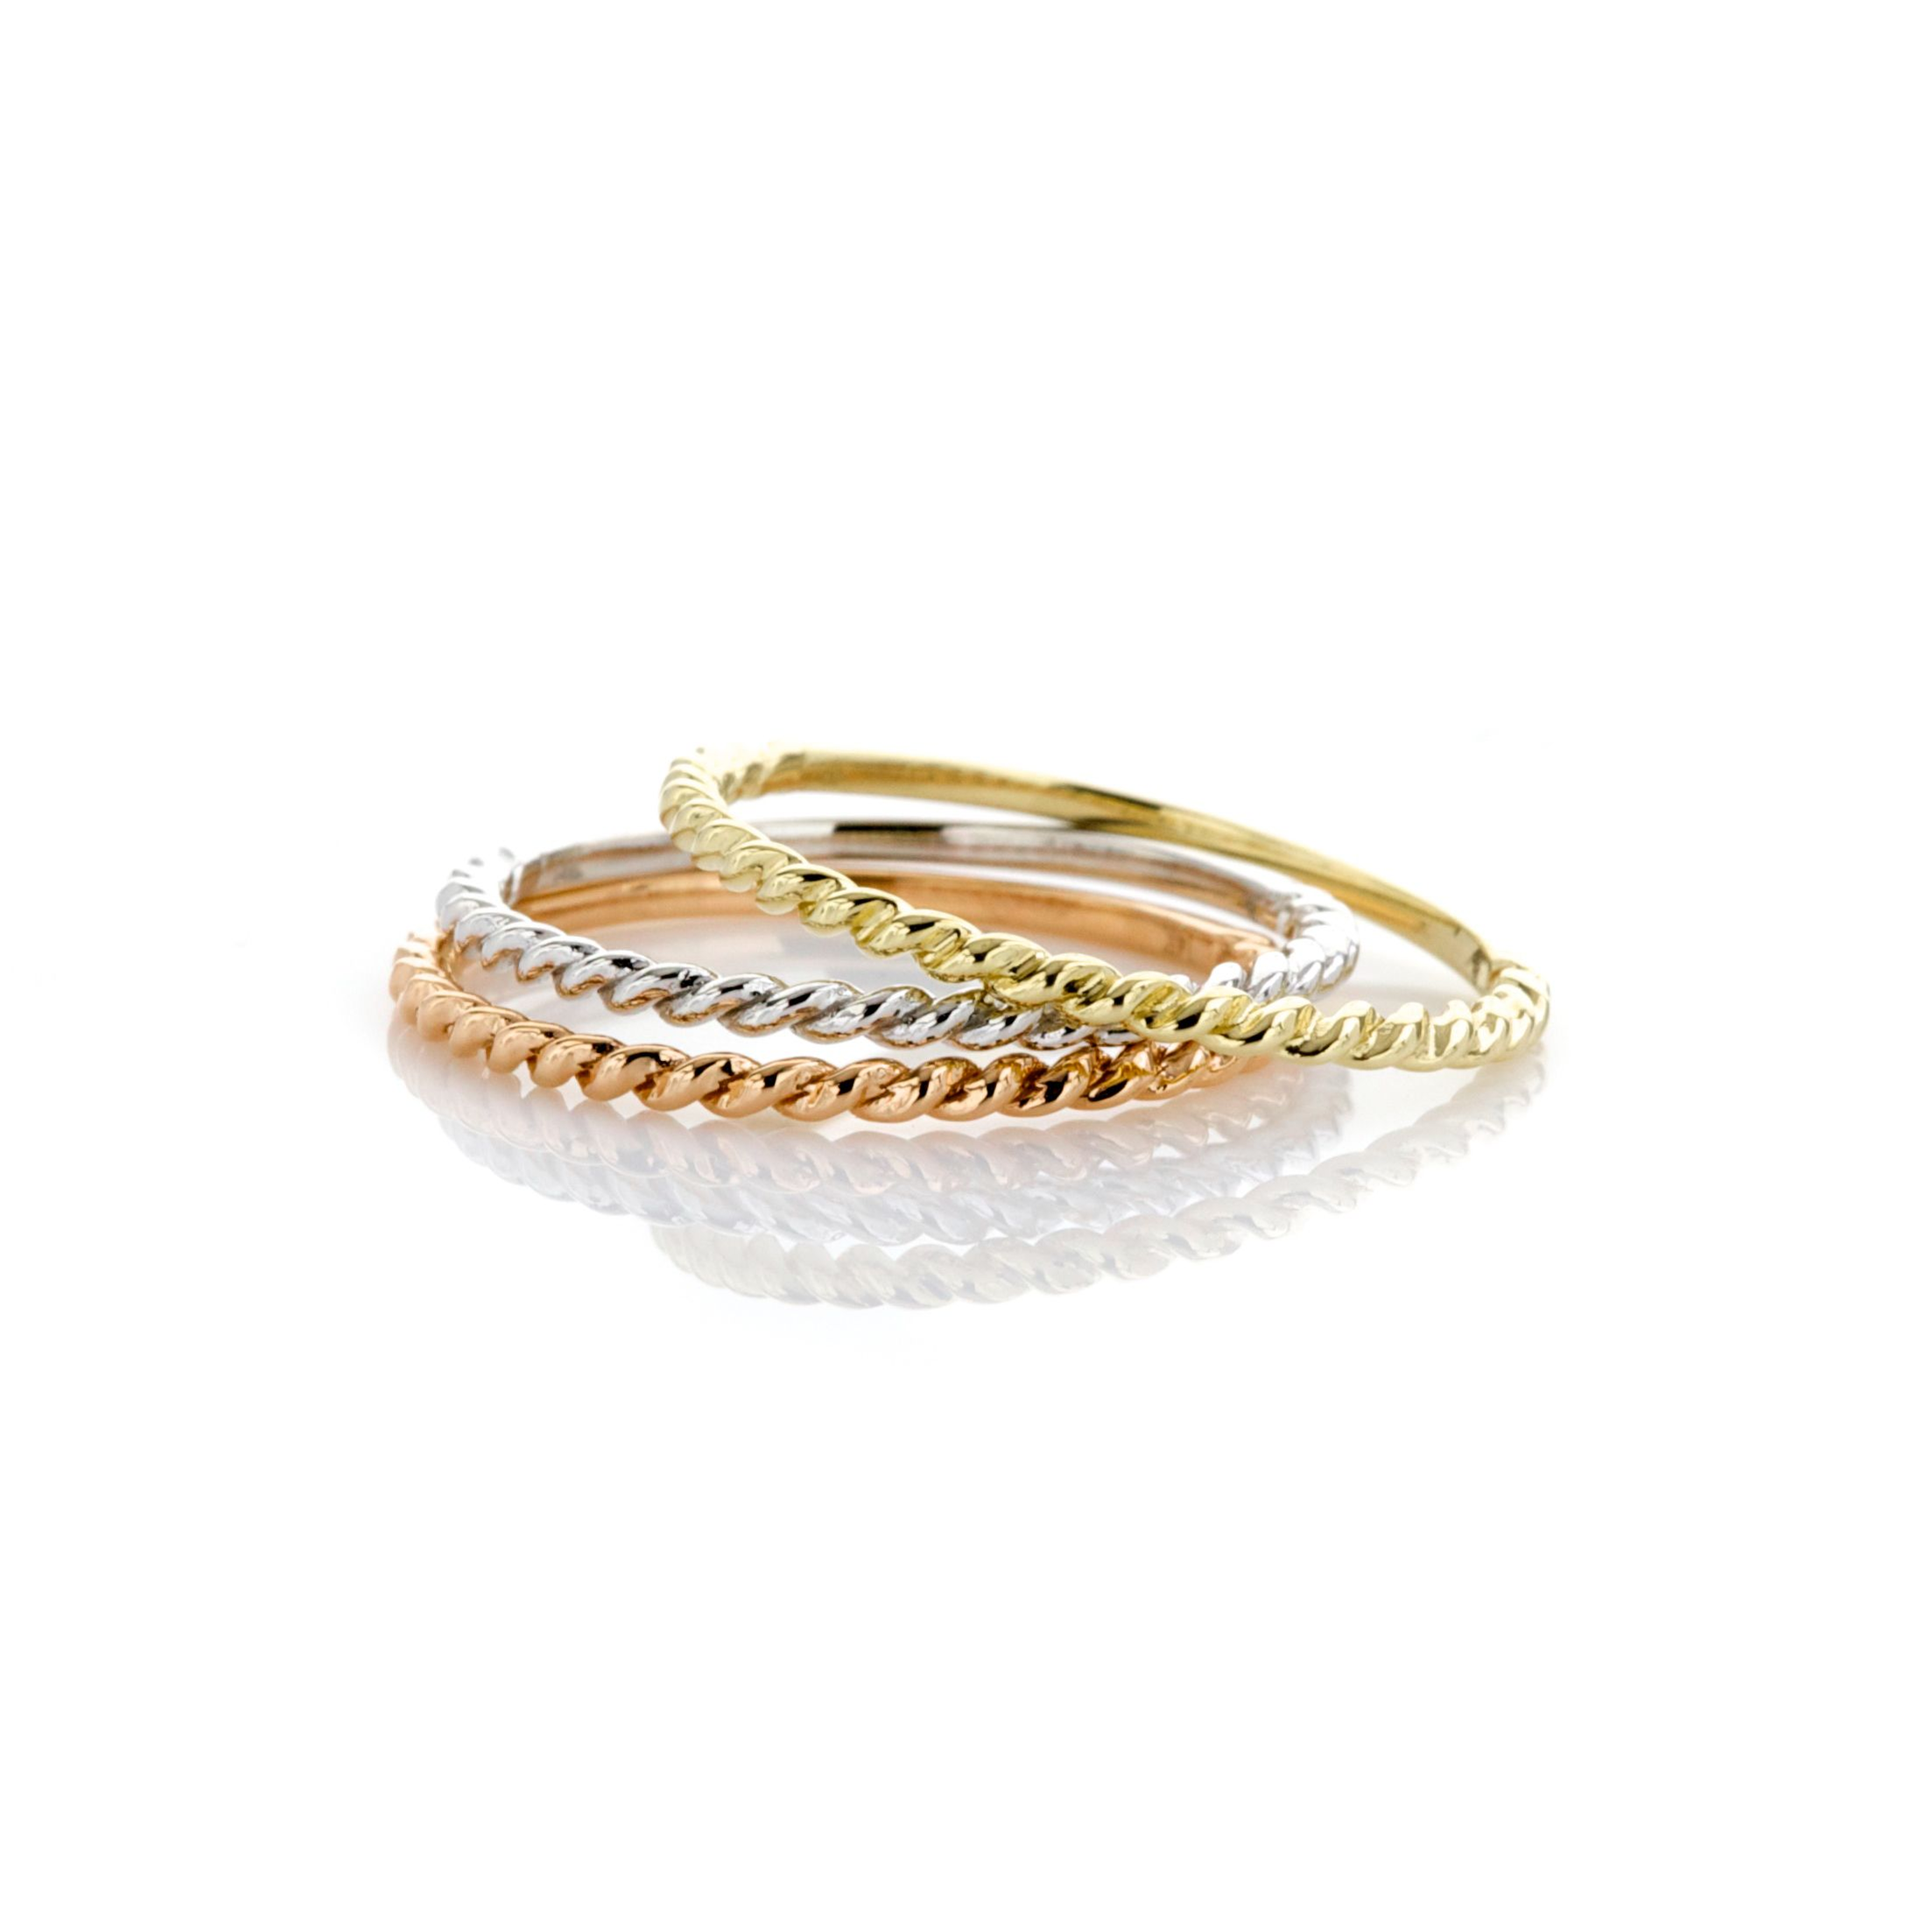 Twisted Rope Texture Thin Stacking Rings in Gold, White Gold, and Rose Gold #Rose #Gold #Stacking #Rings #Rope #Trends